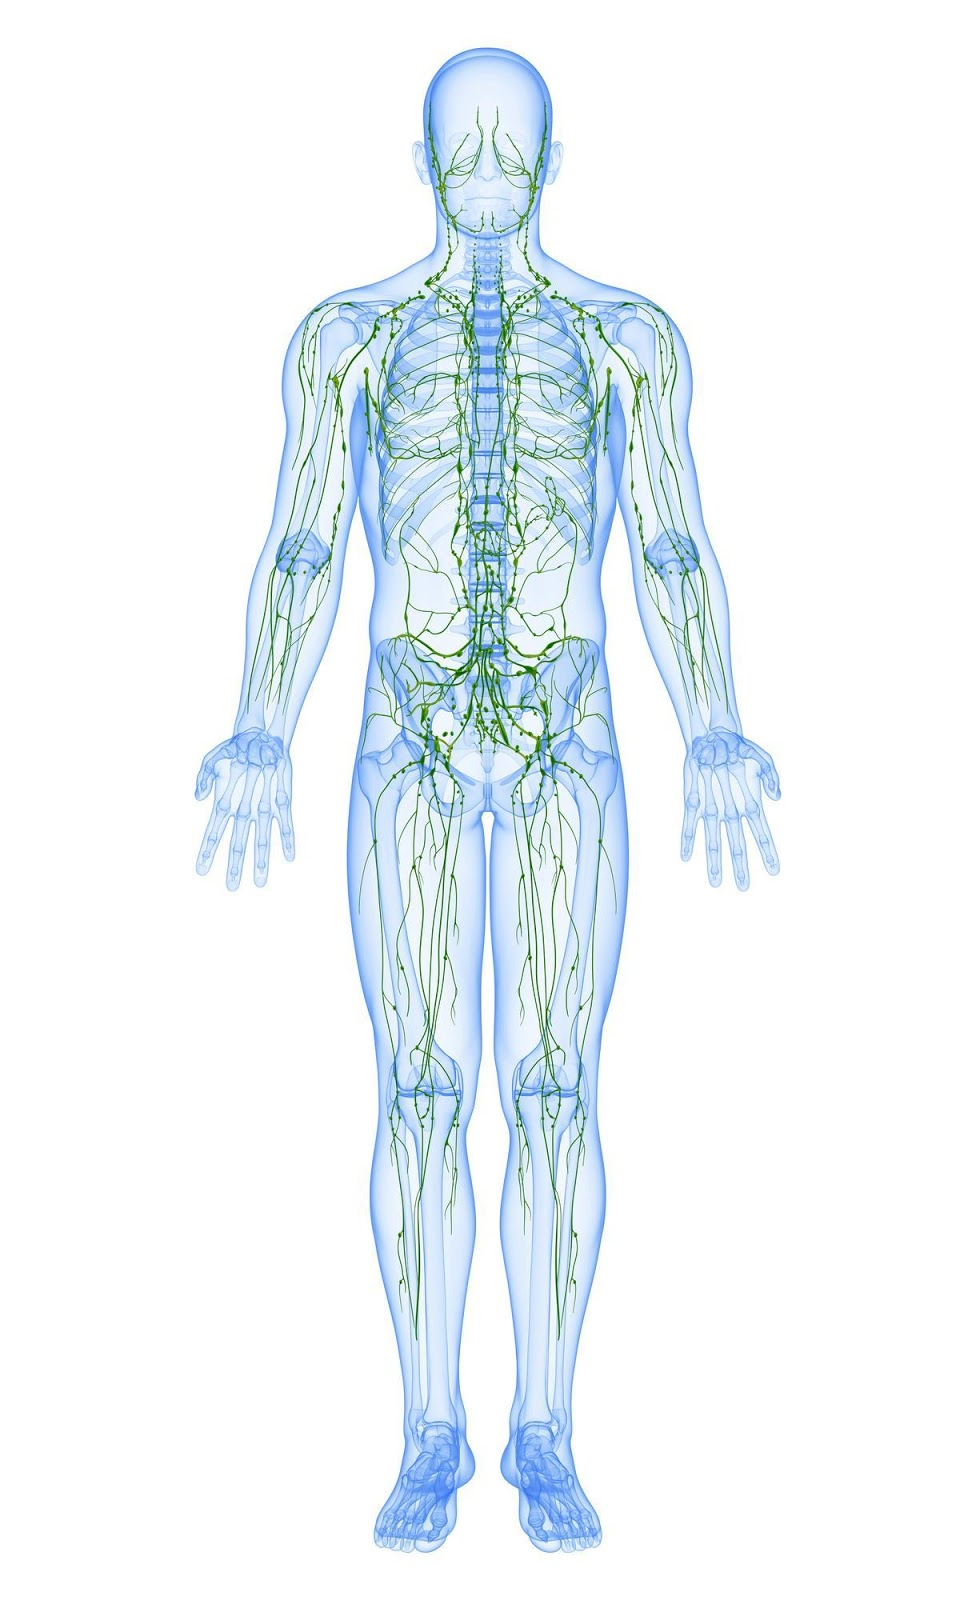 Lymphatic System In Man's Body